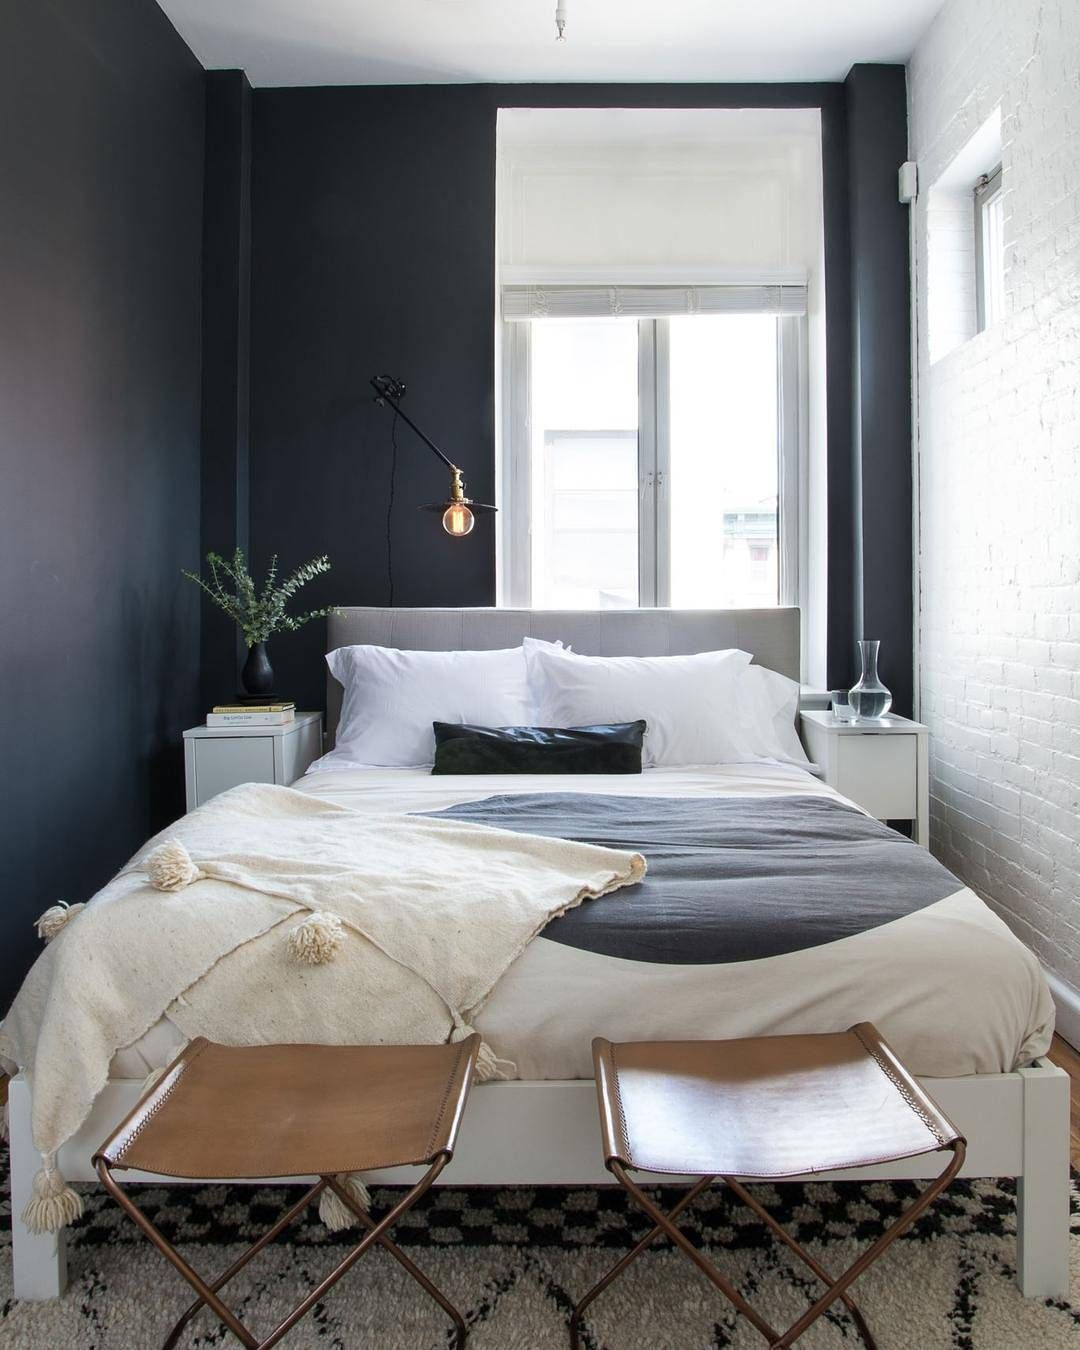 Design tip when a room gets great